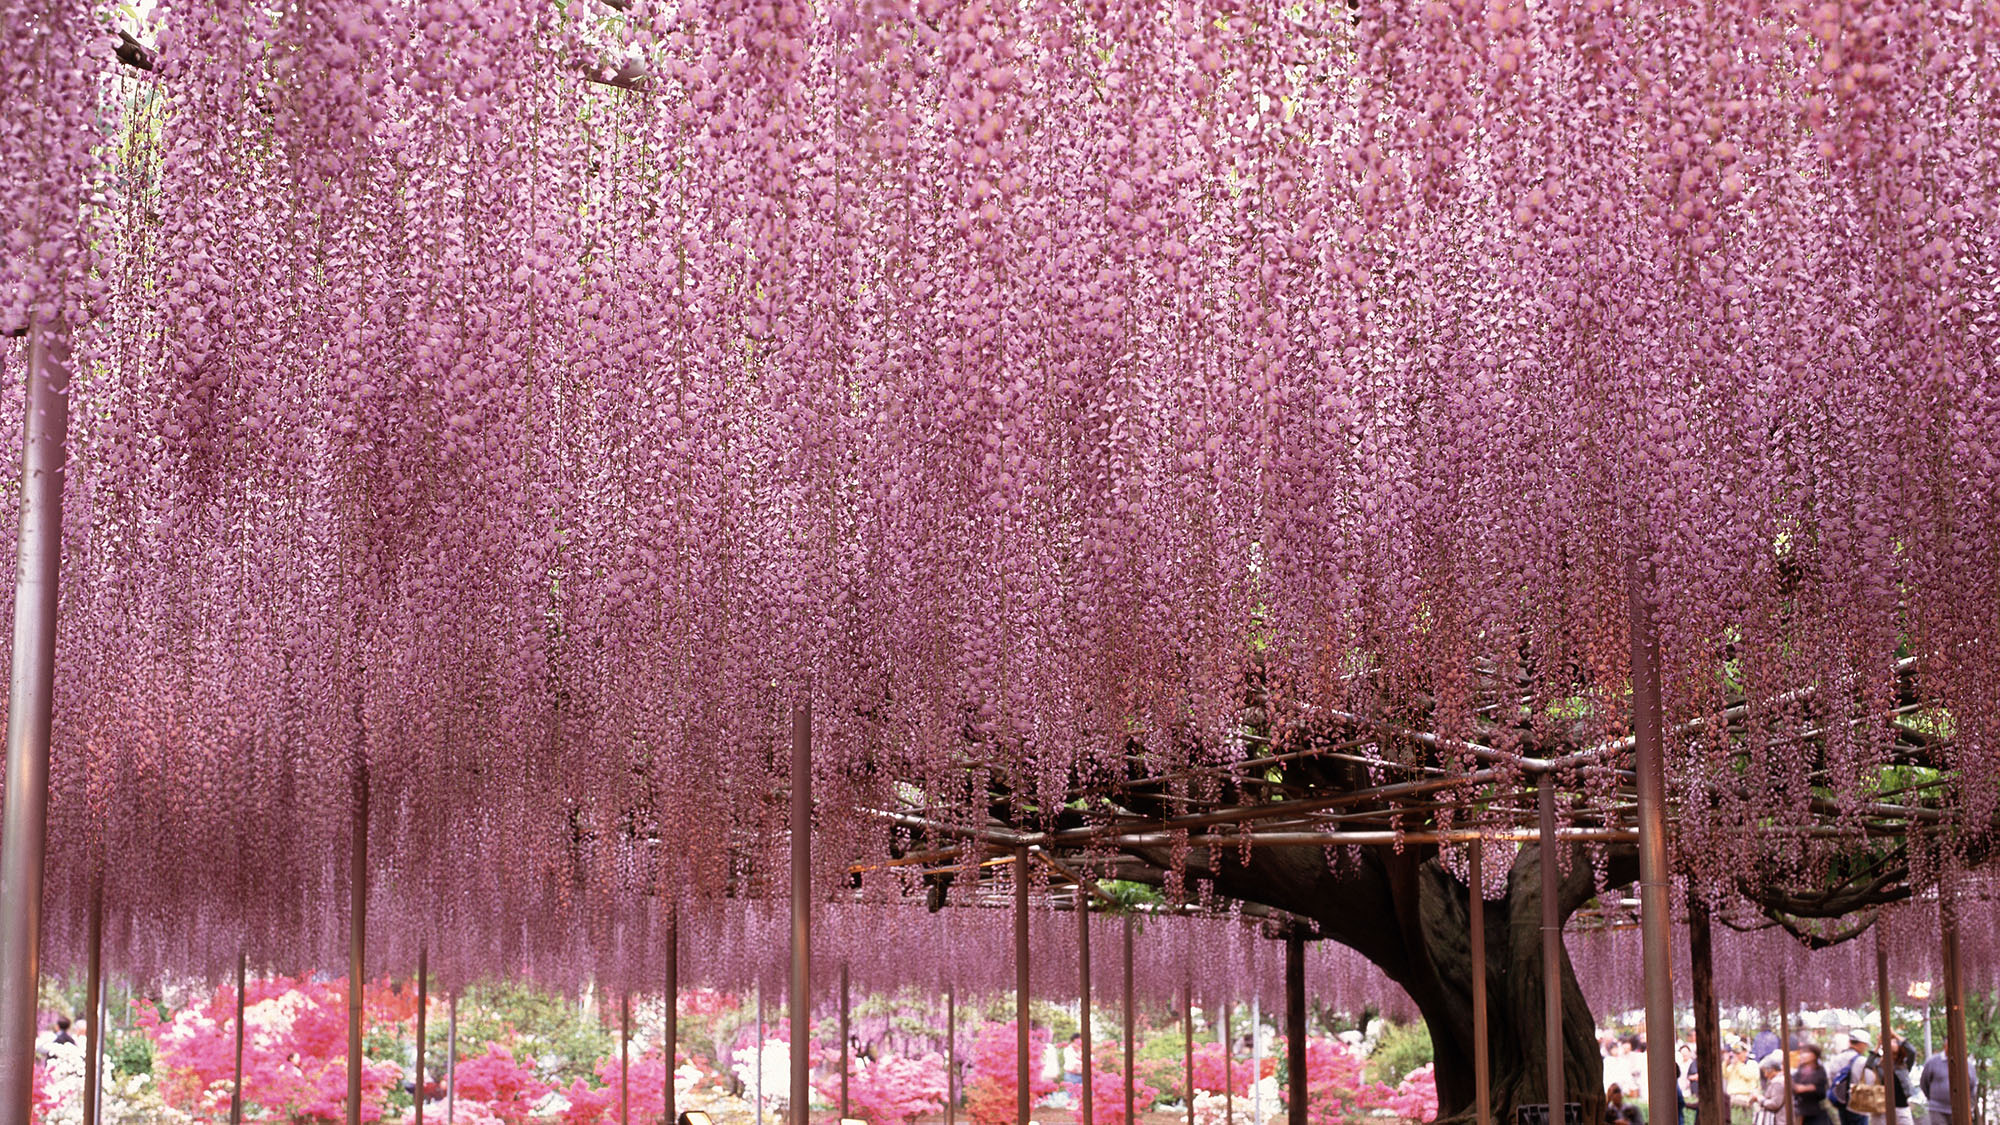 Is this the world's most beautiful tree?